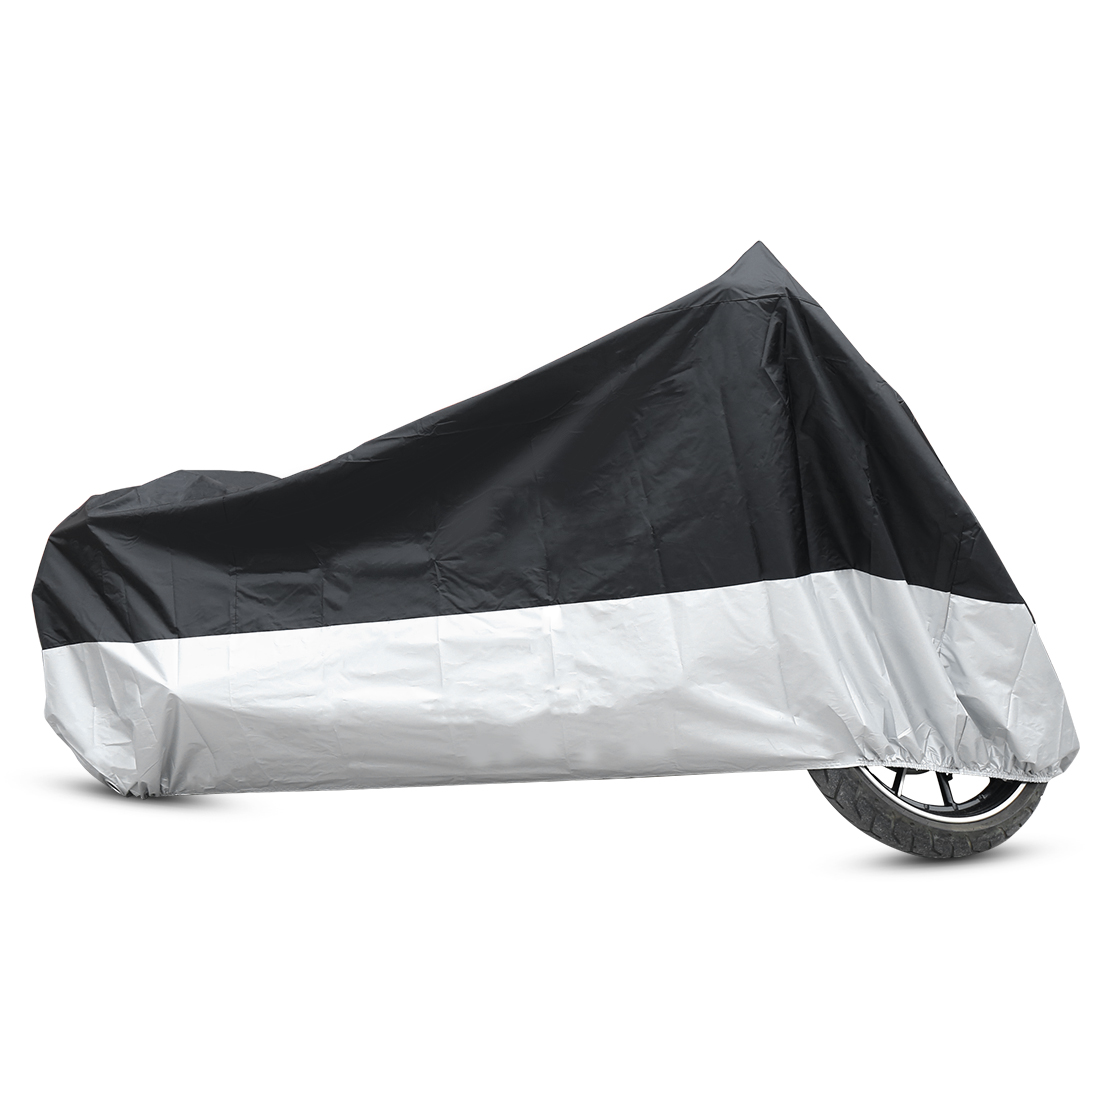 L 180T Rain Dust Motorcycle Cover Black+Silver Outdoor Waterproof UV Protector